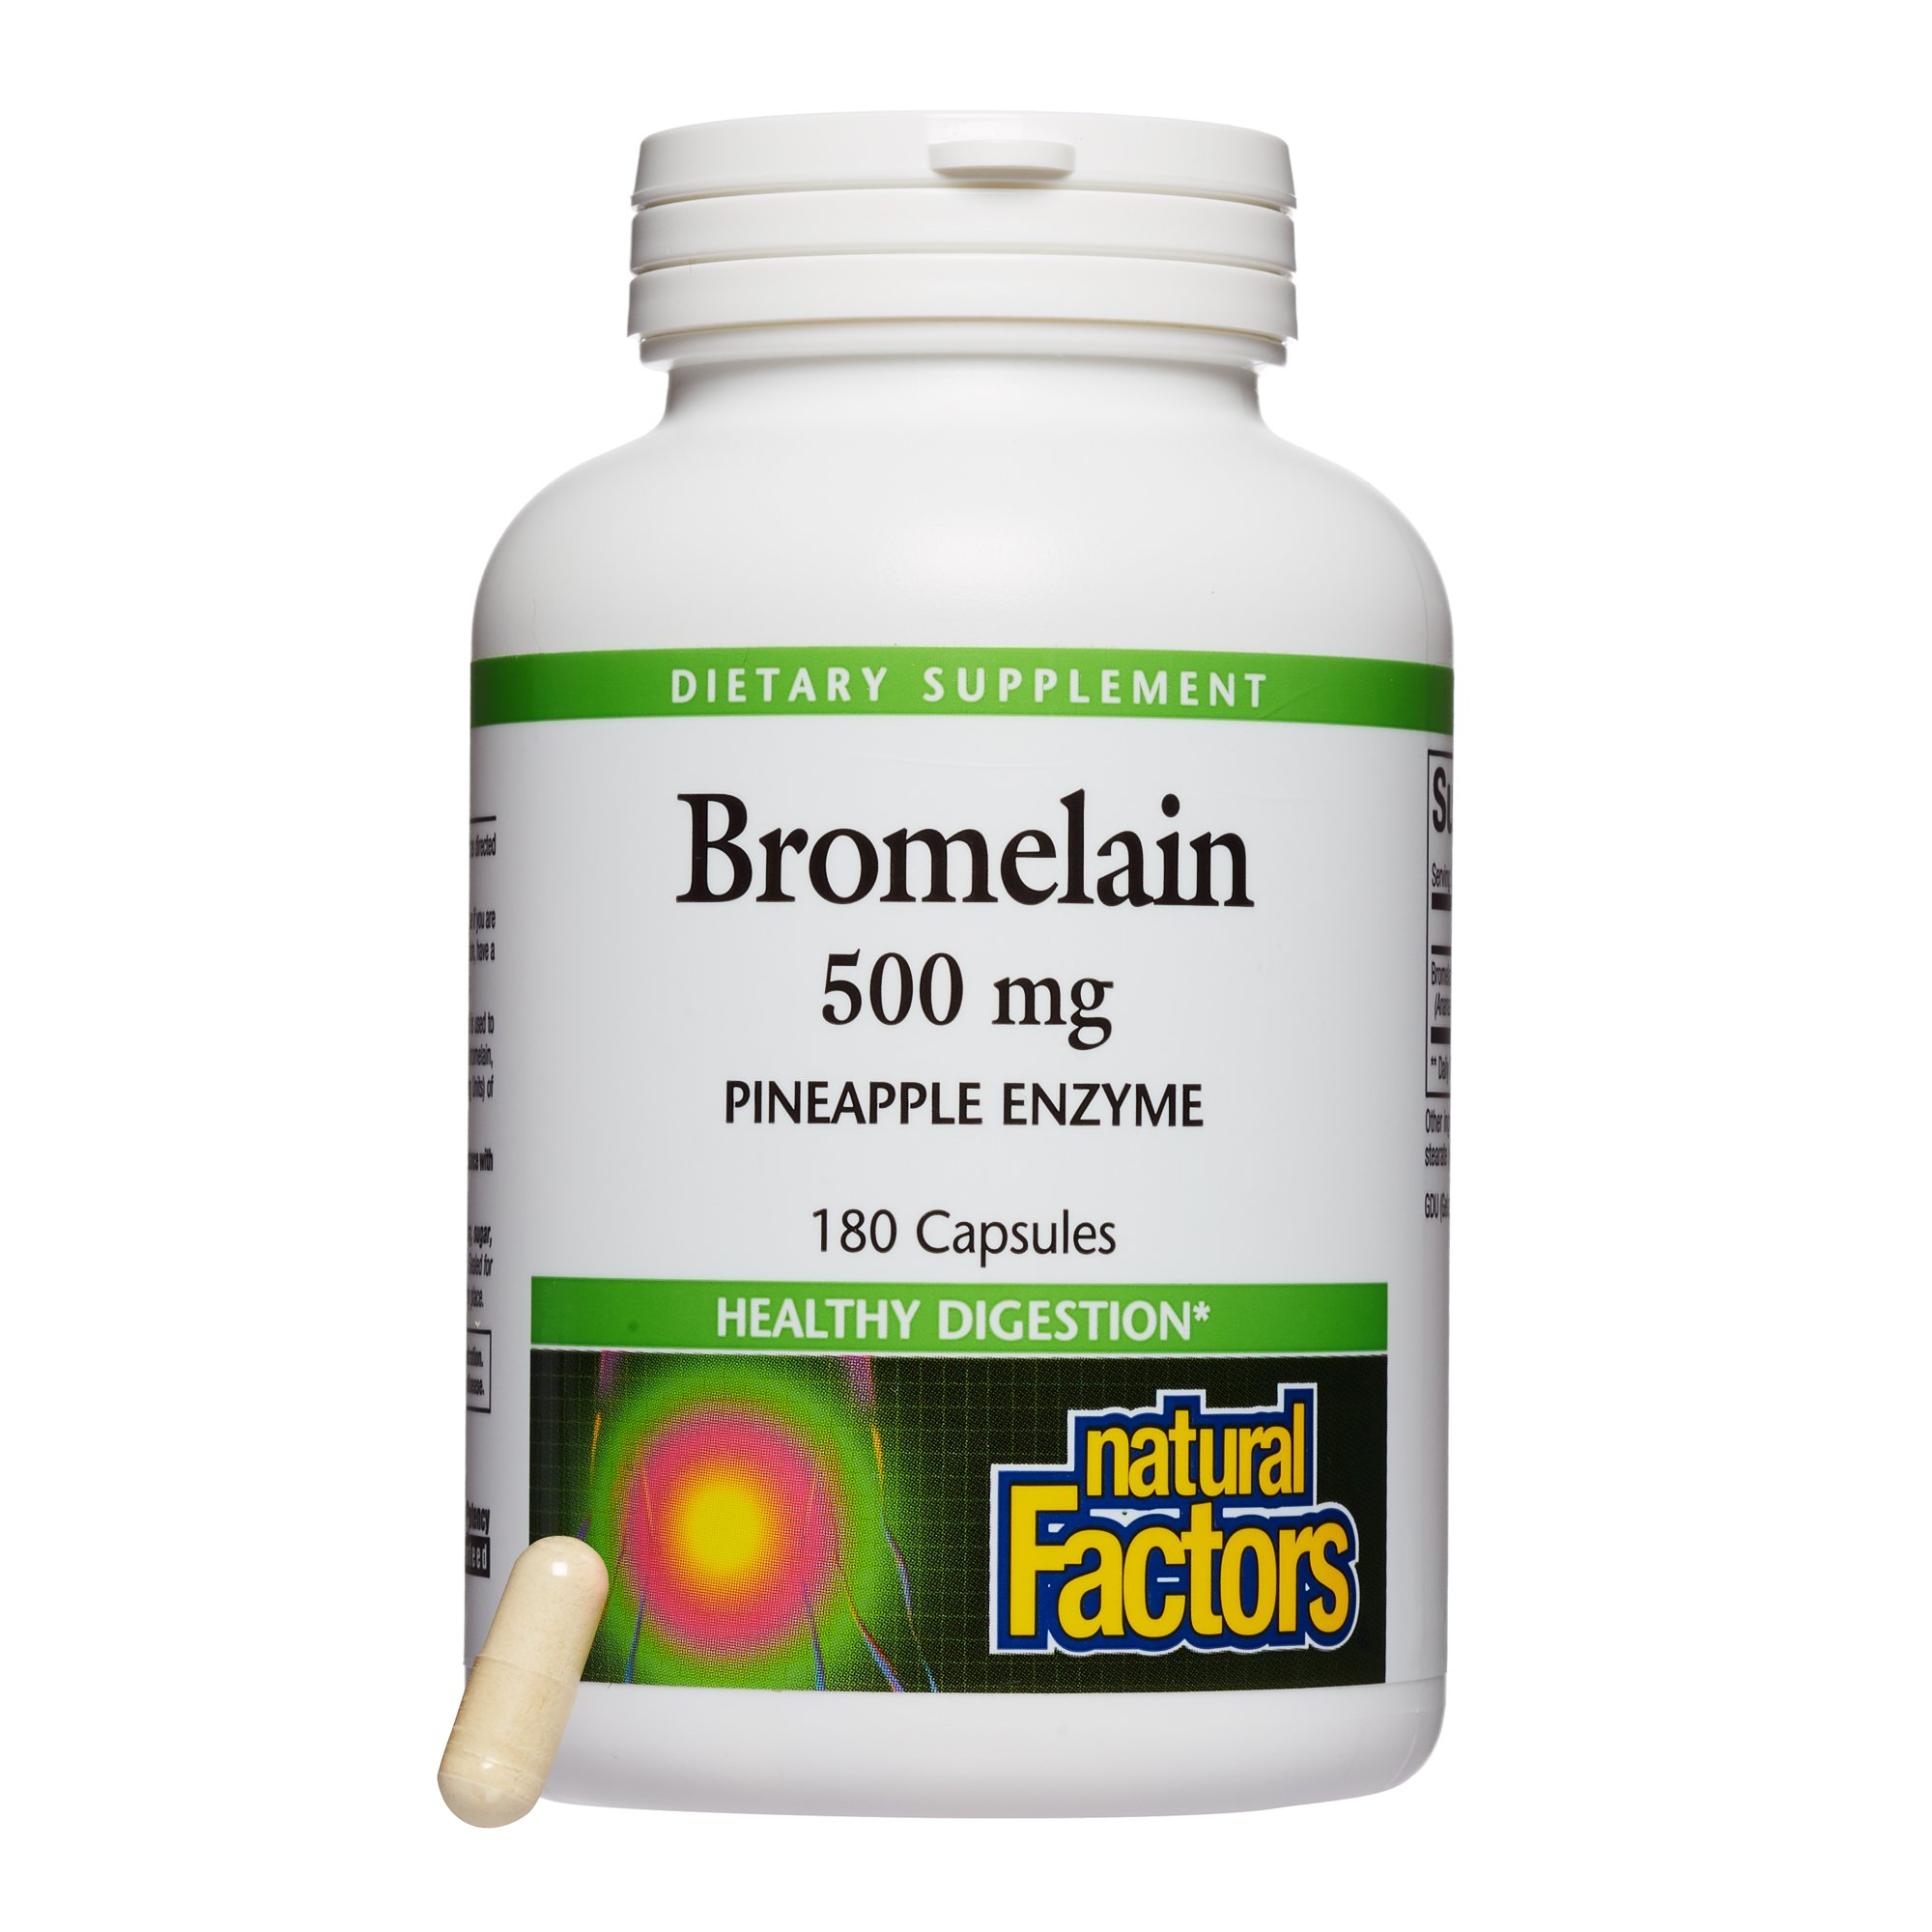 Natural Factors - Bromelain 500mg, Natural Support for Healthy Digestion, Proteolytic Enzymes from Pineapple, Non-GMO, 180 Capsules